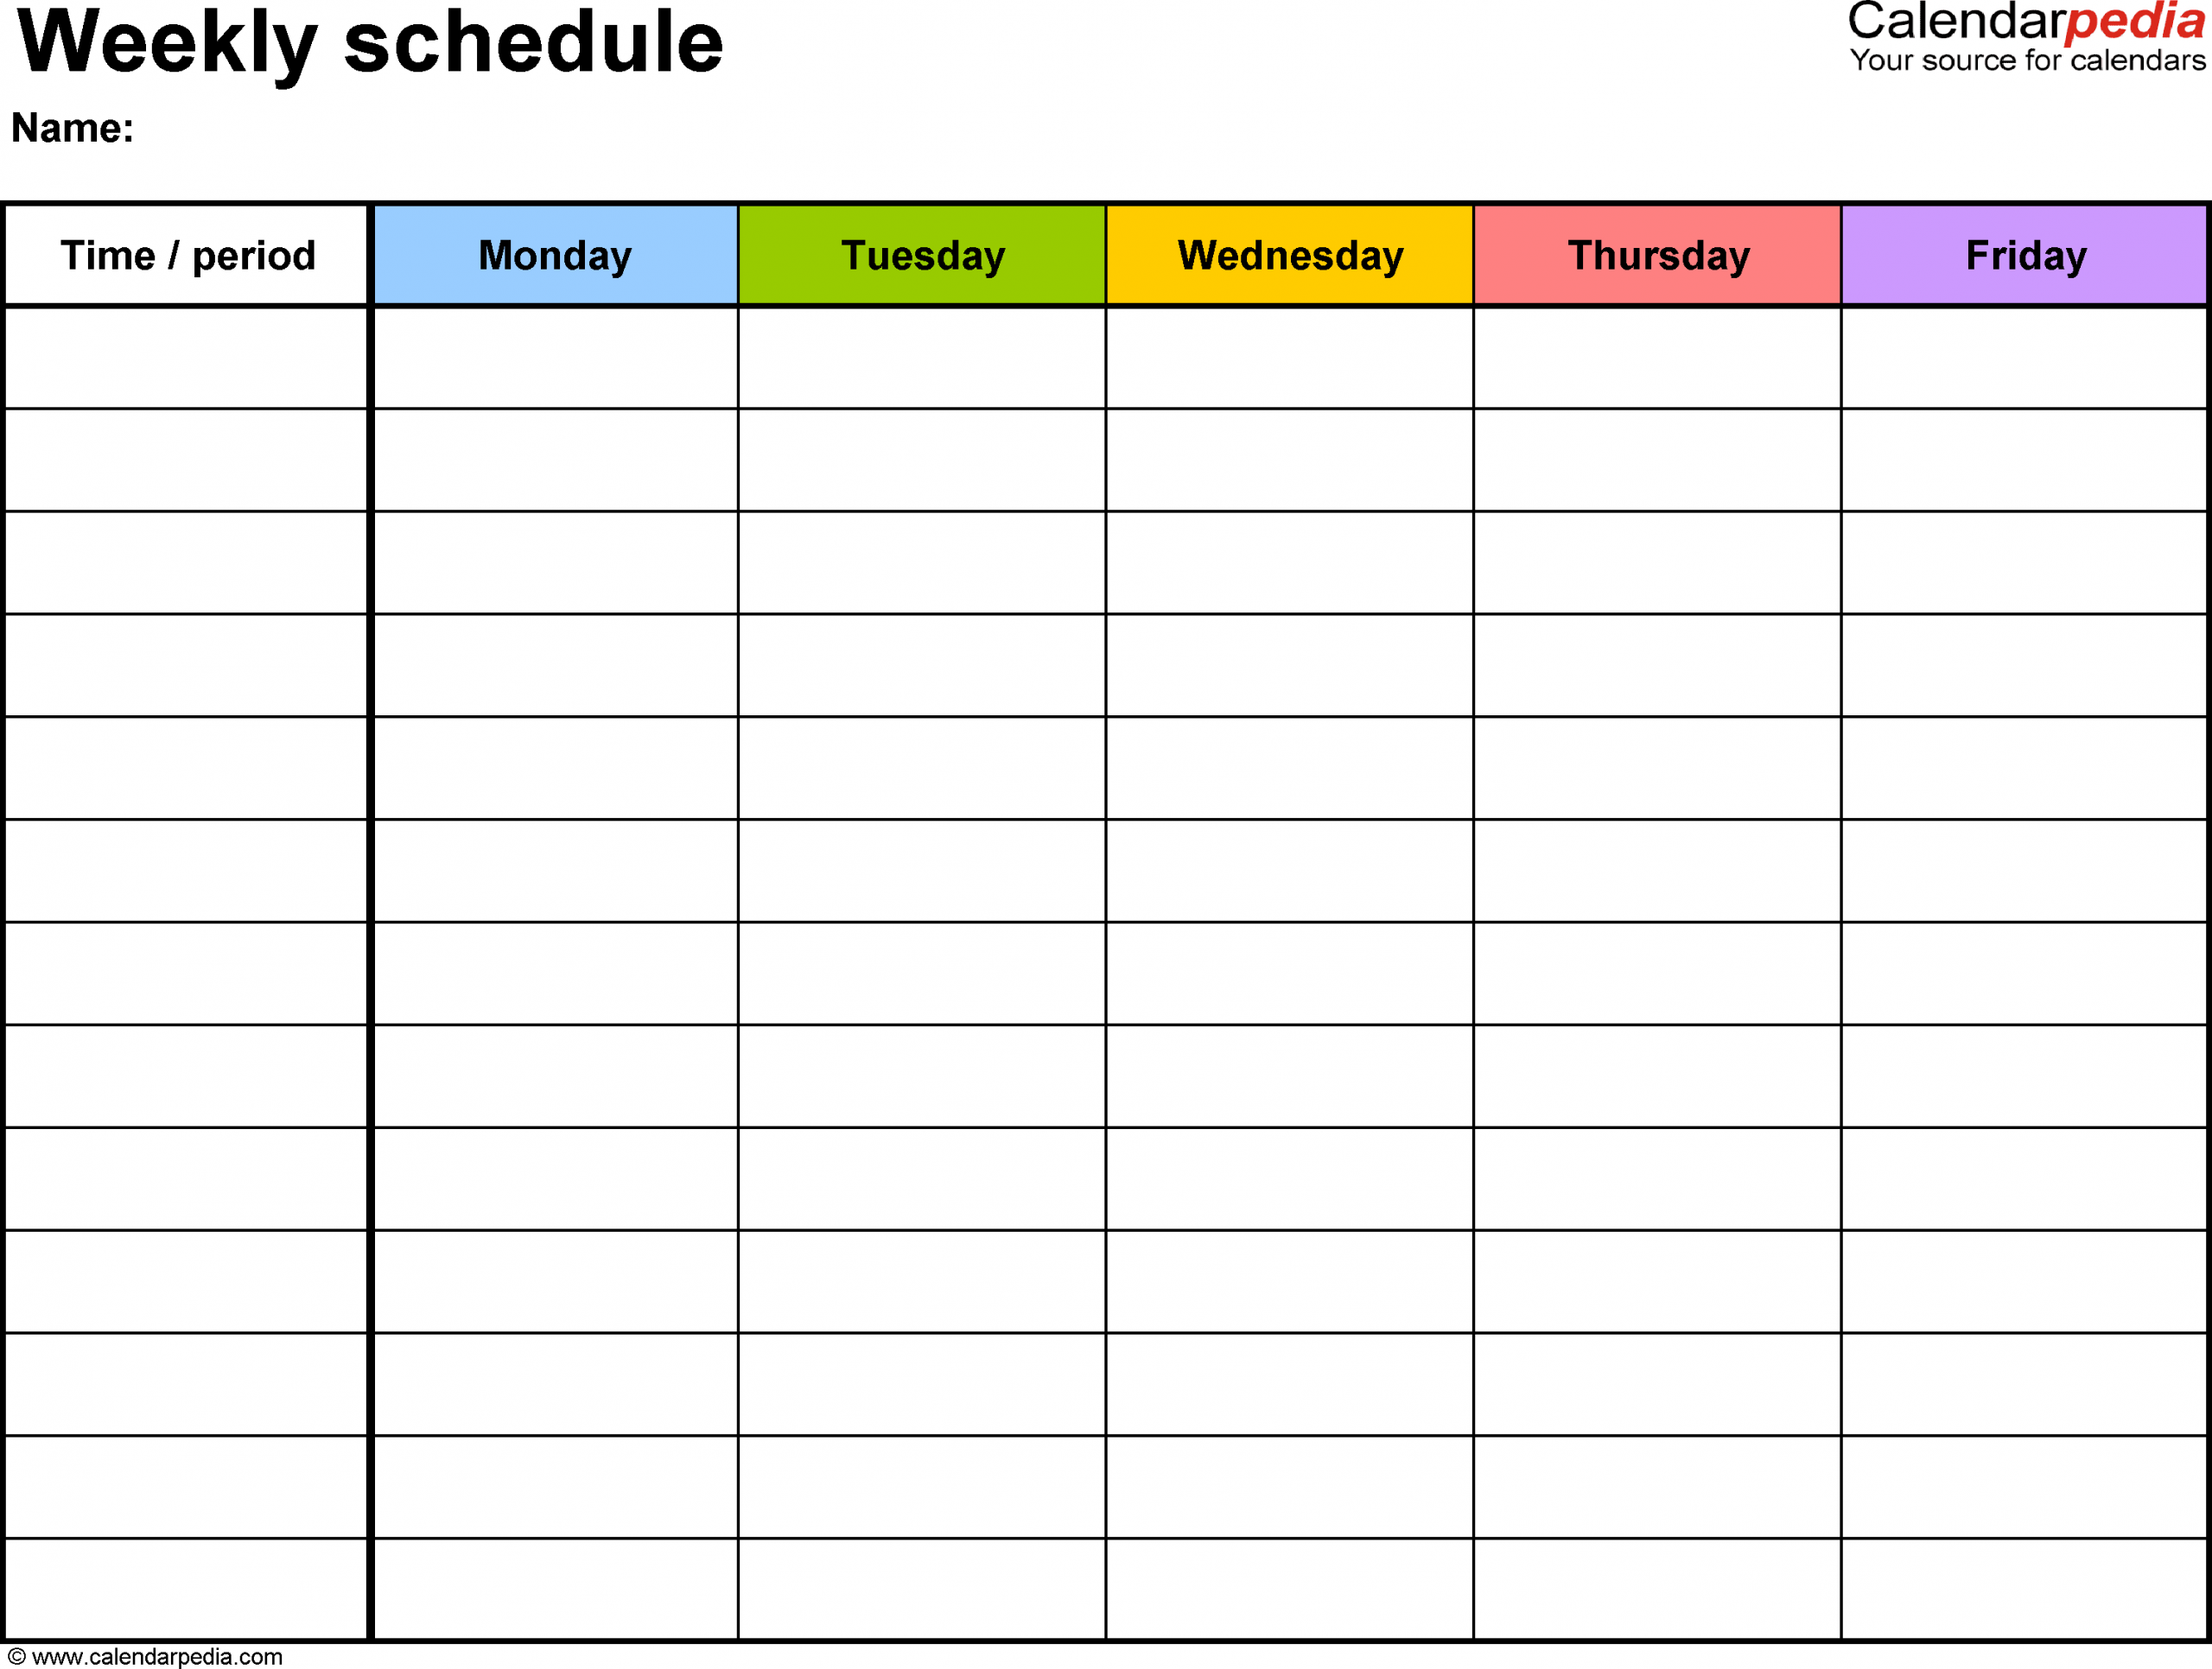 Weekly Schedule Template For Word Version 1: Landscape, 1 Free Calendar Template To Populate